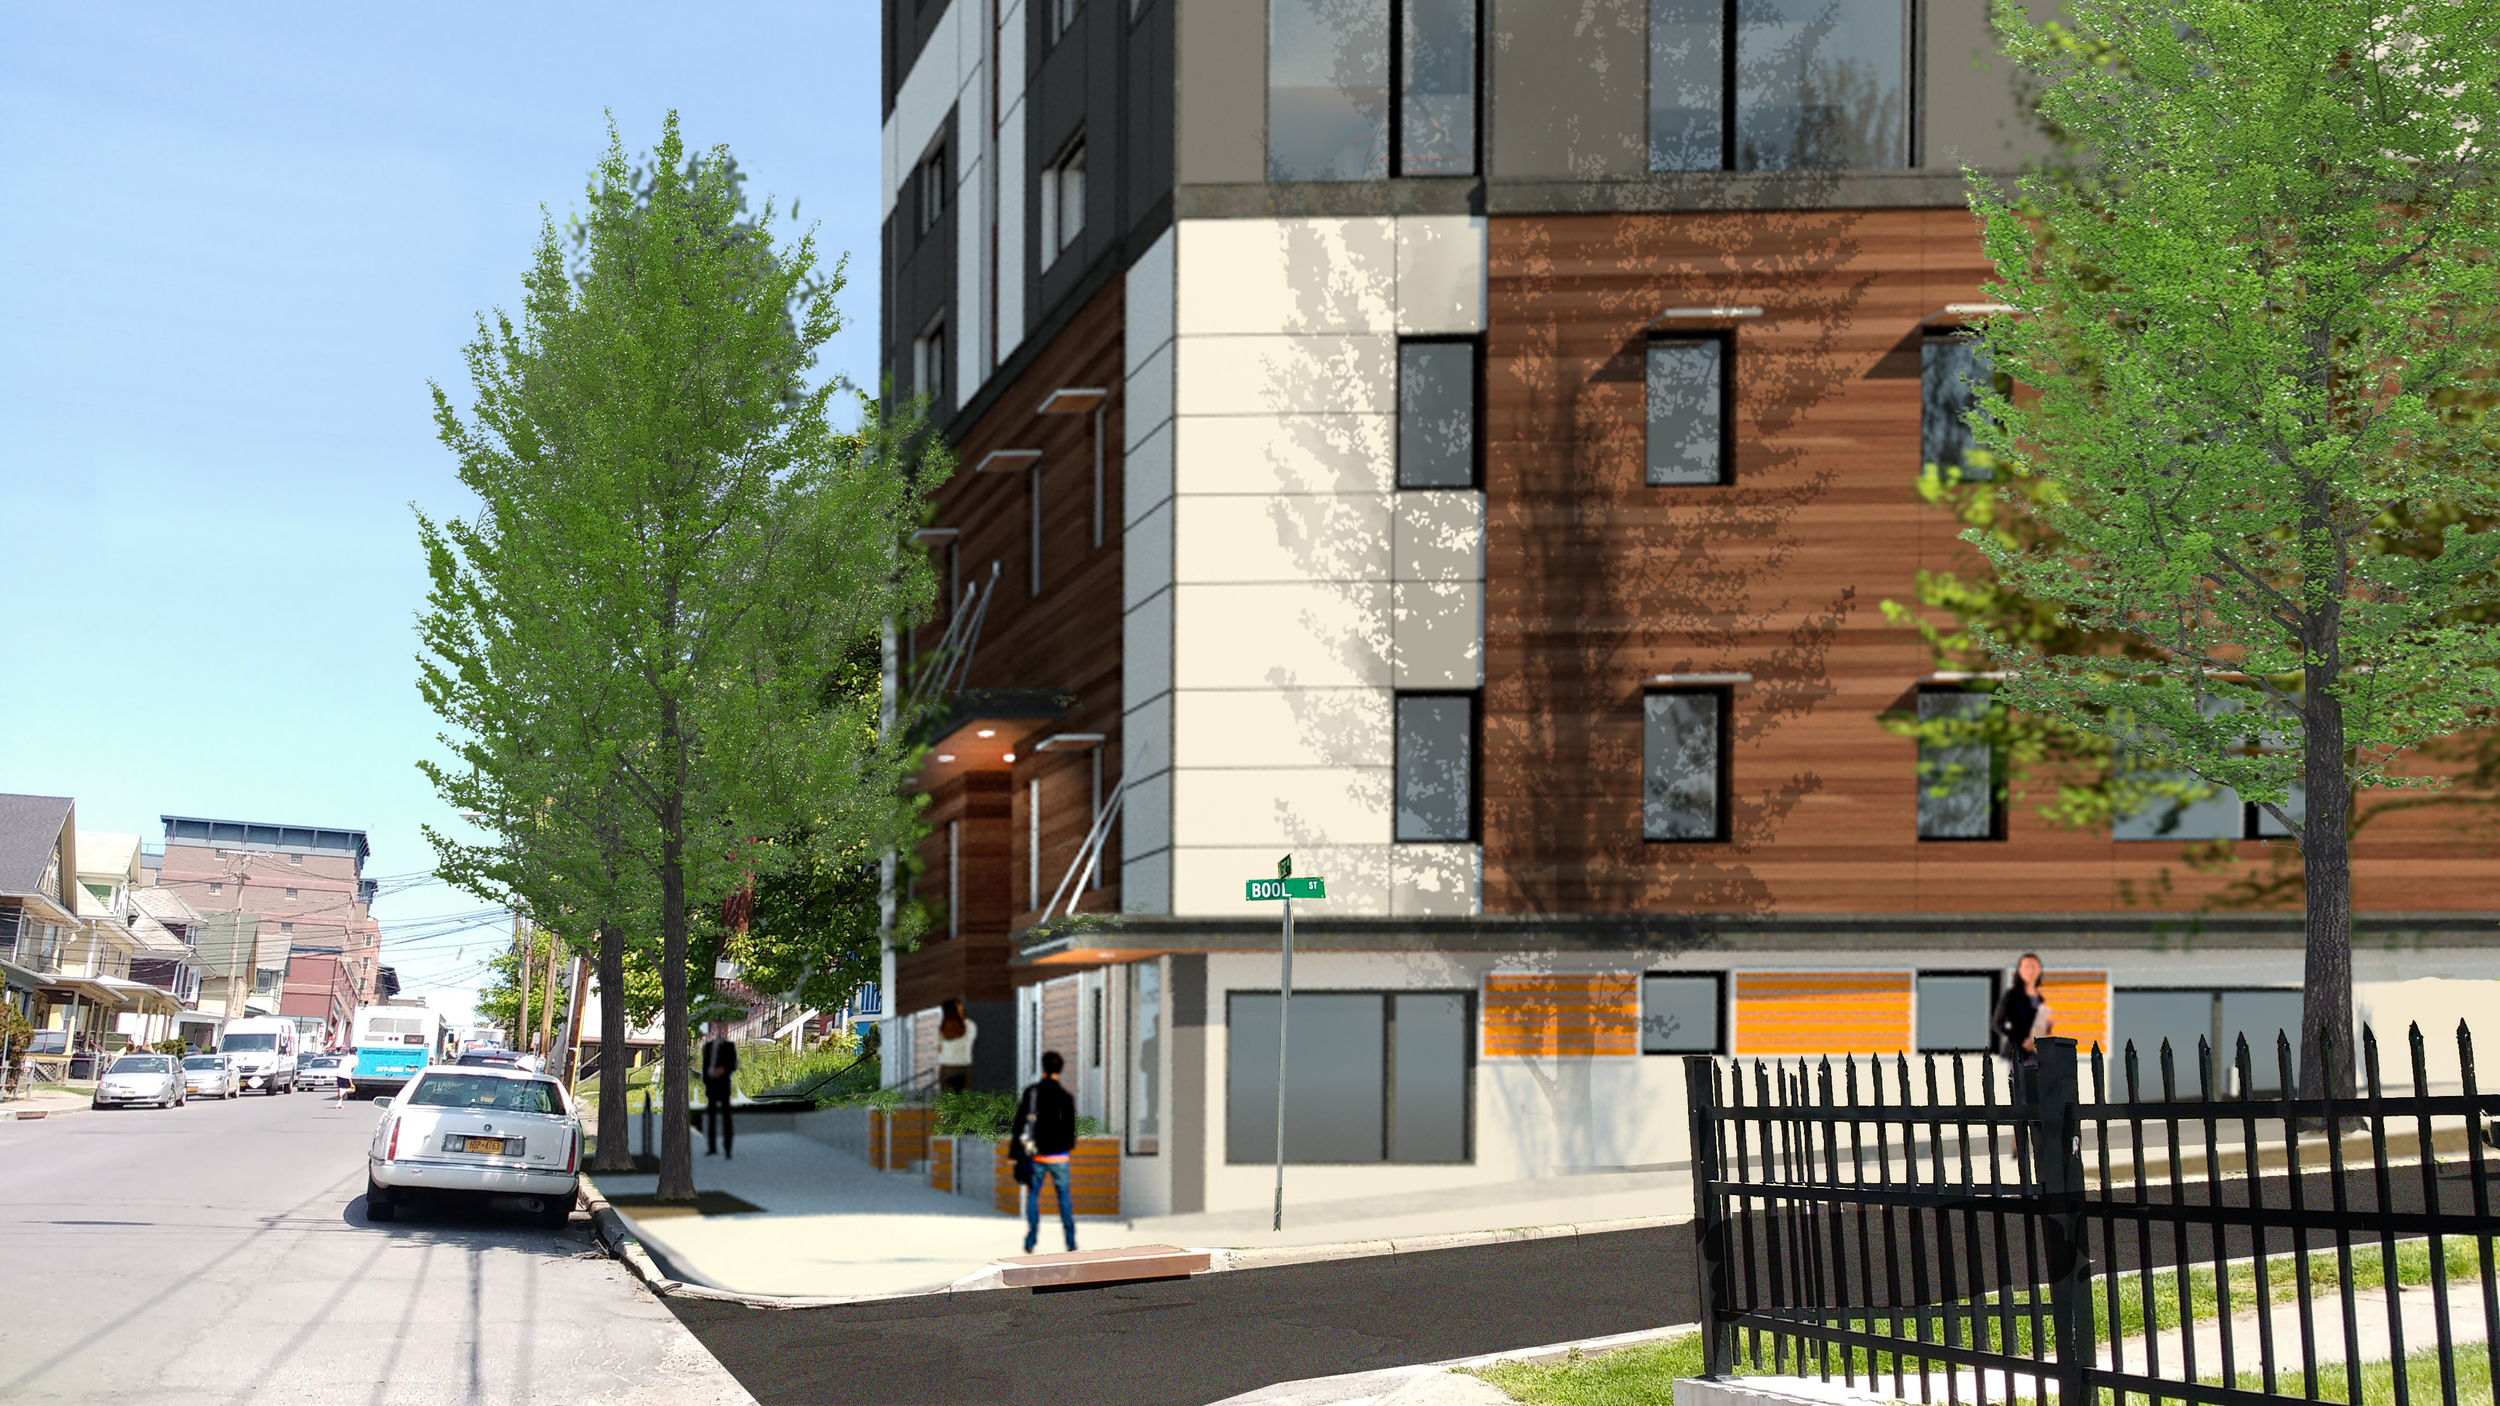 201 College Ave_Close Corner View_Render_2016.06.21.jpg